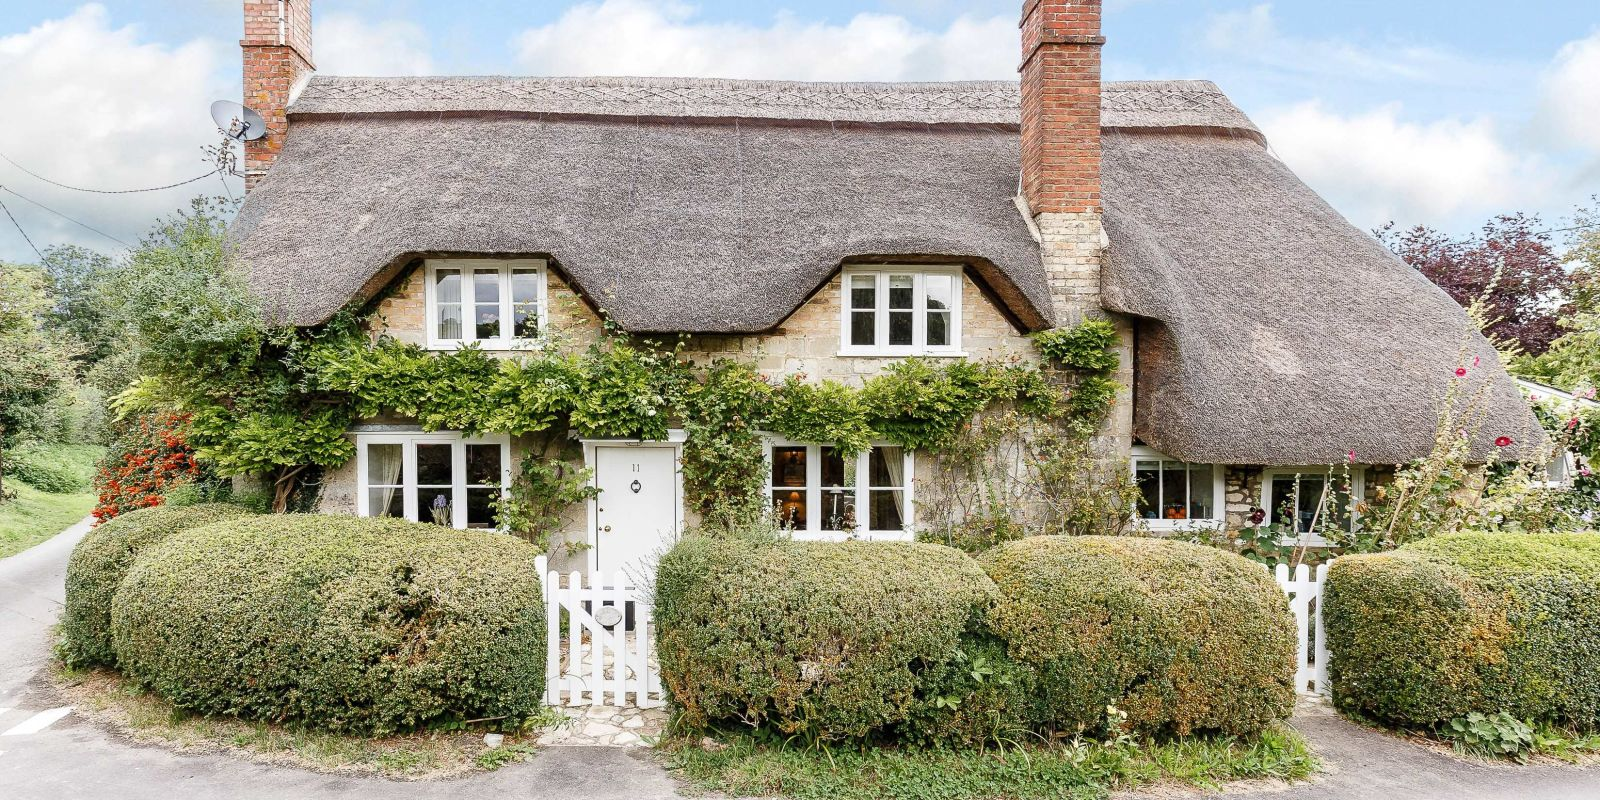 Beautiful Cottage For Holidays: Beautiful Thatched Cottage For Sale In Wiltshire Would Be